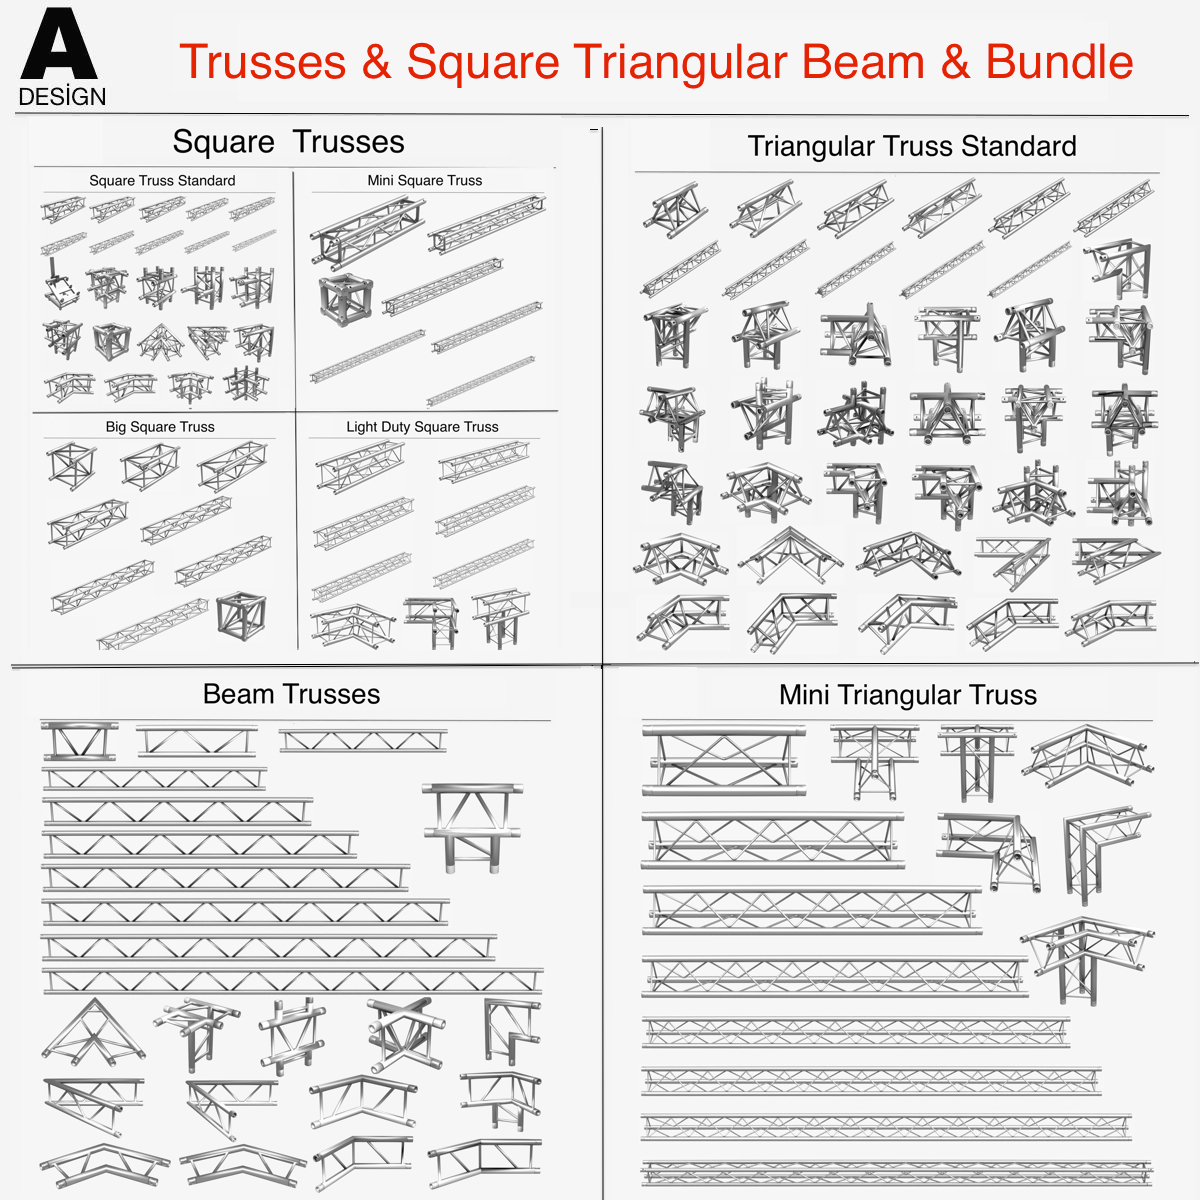 Square Triangular Beam Collection 170 Modular 3d model 3ds max dxf fbx c4d dae   obj Collada dae 268349